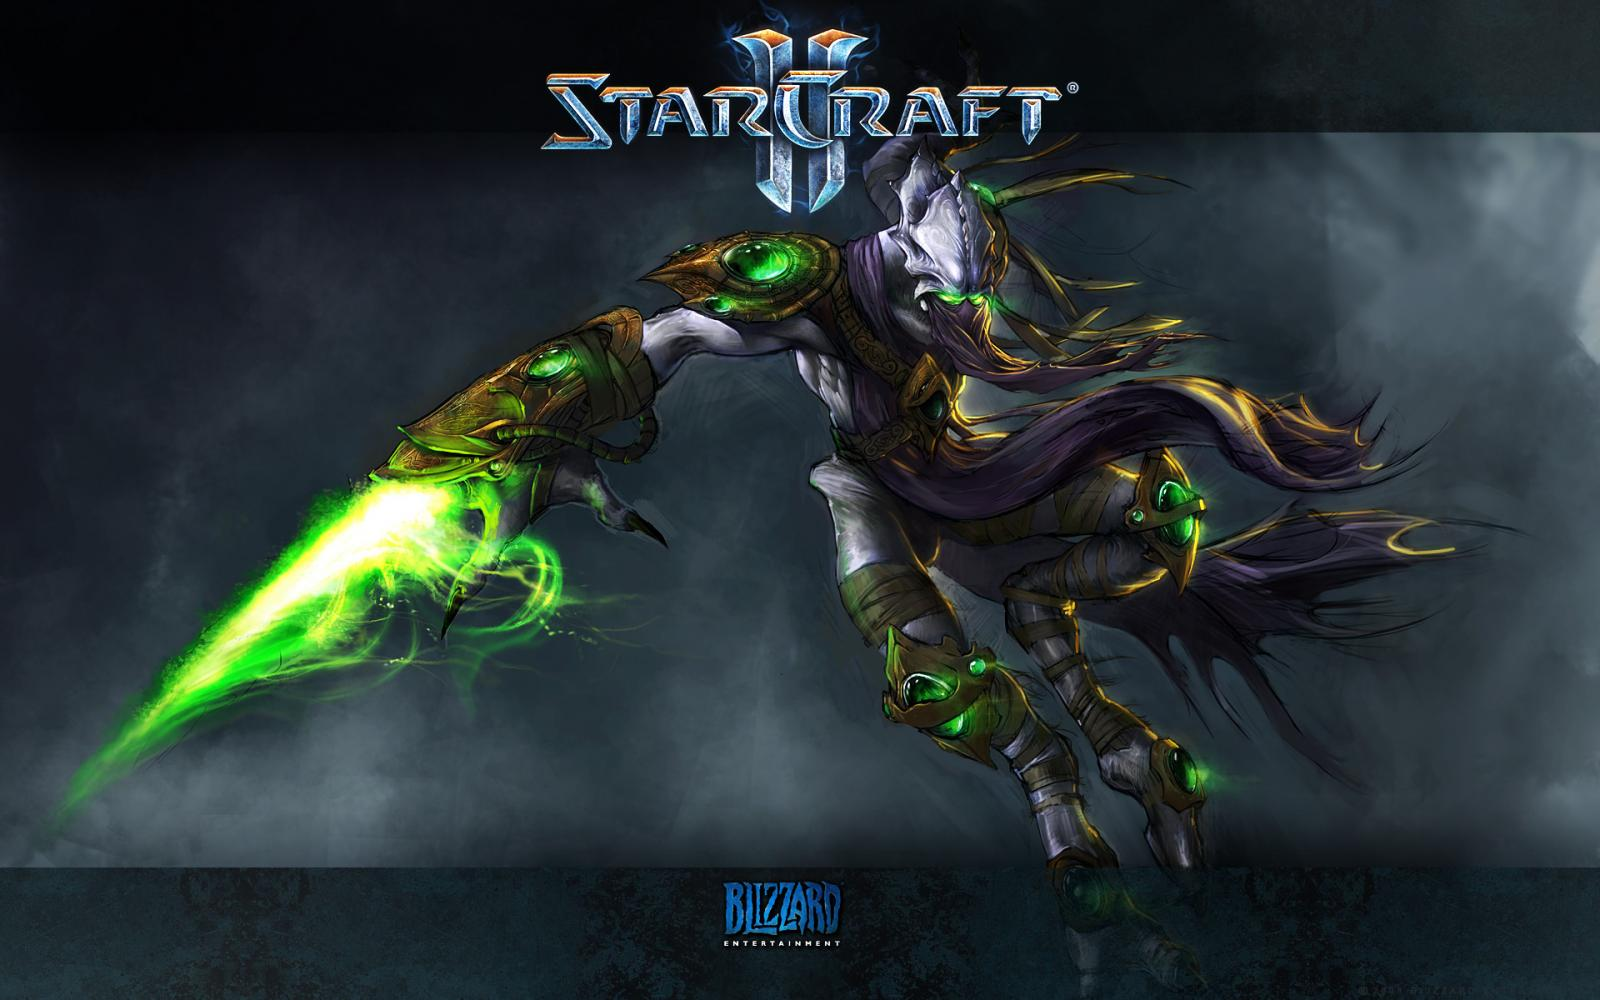 Wallpaper Jeux video StarCraft 2 - Zeratul